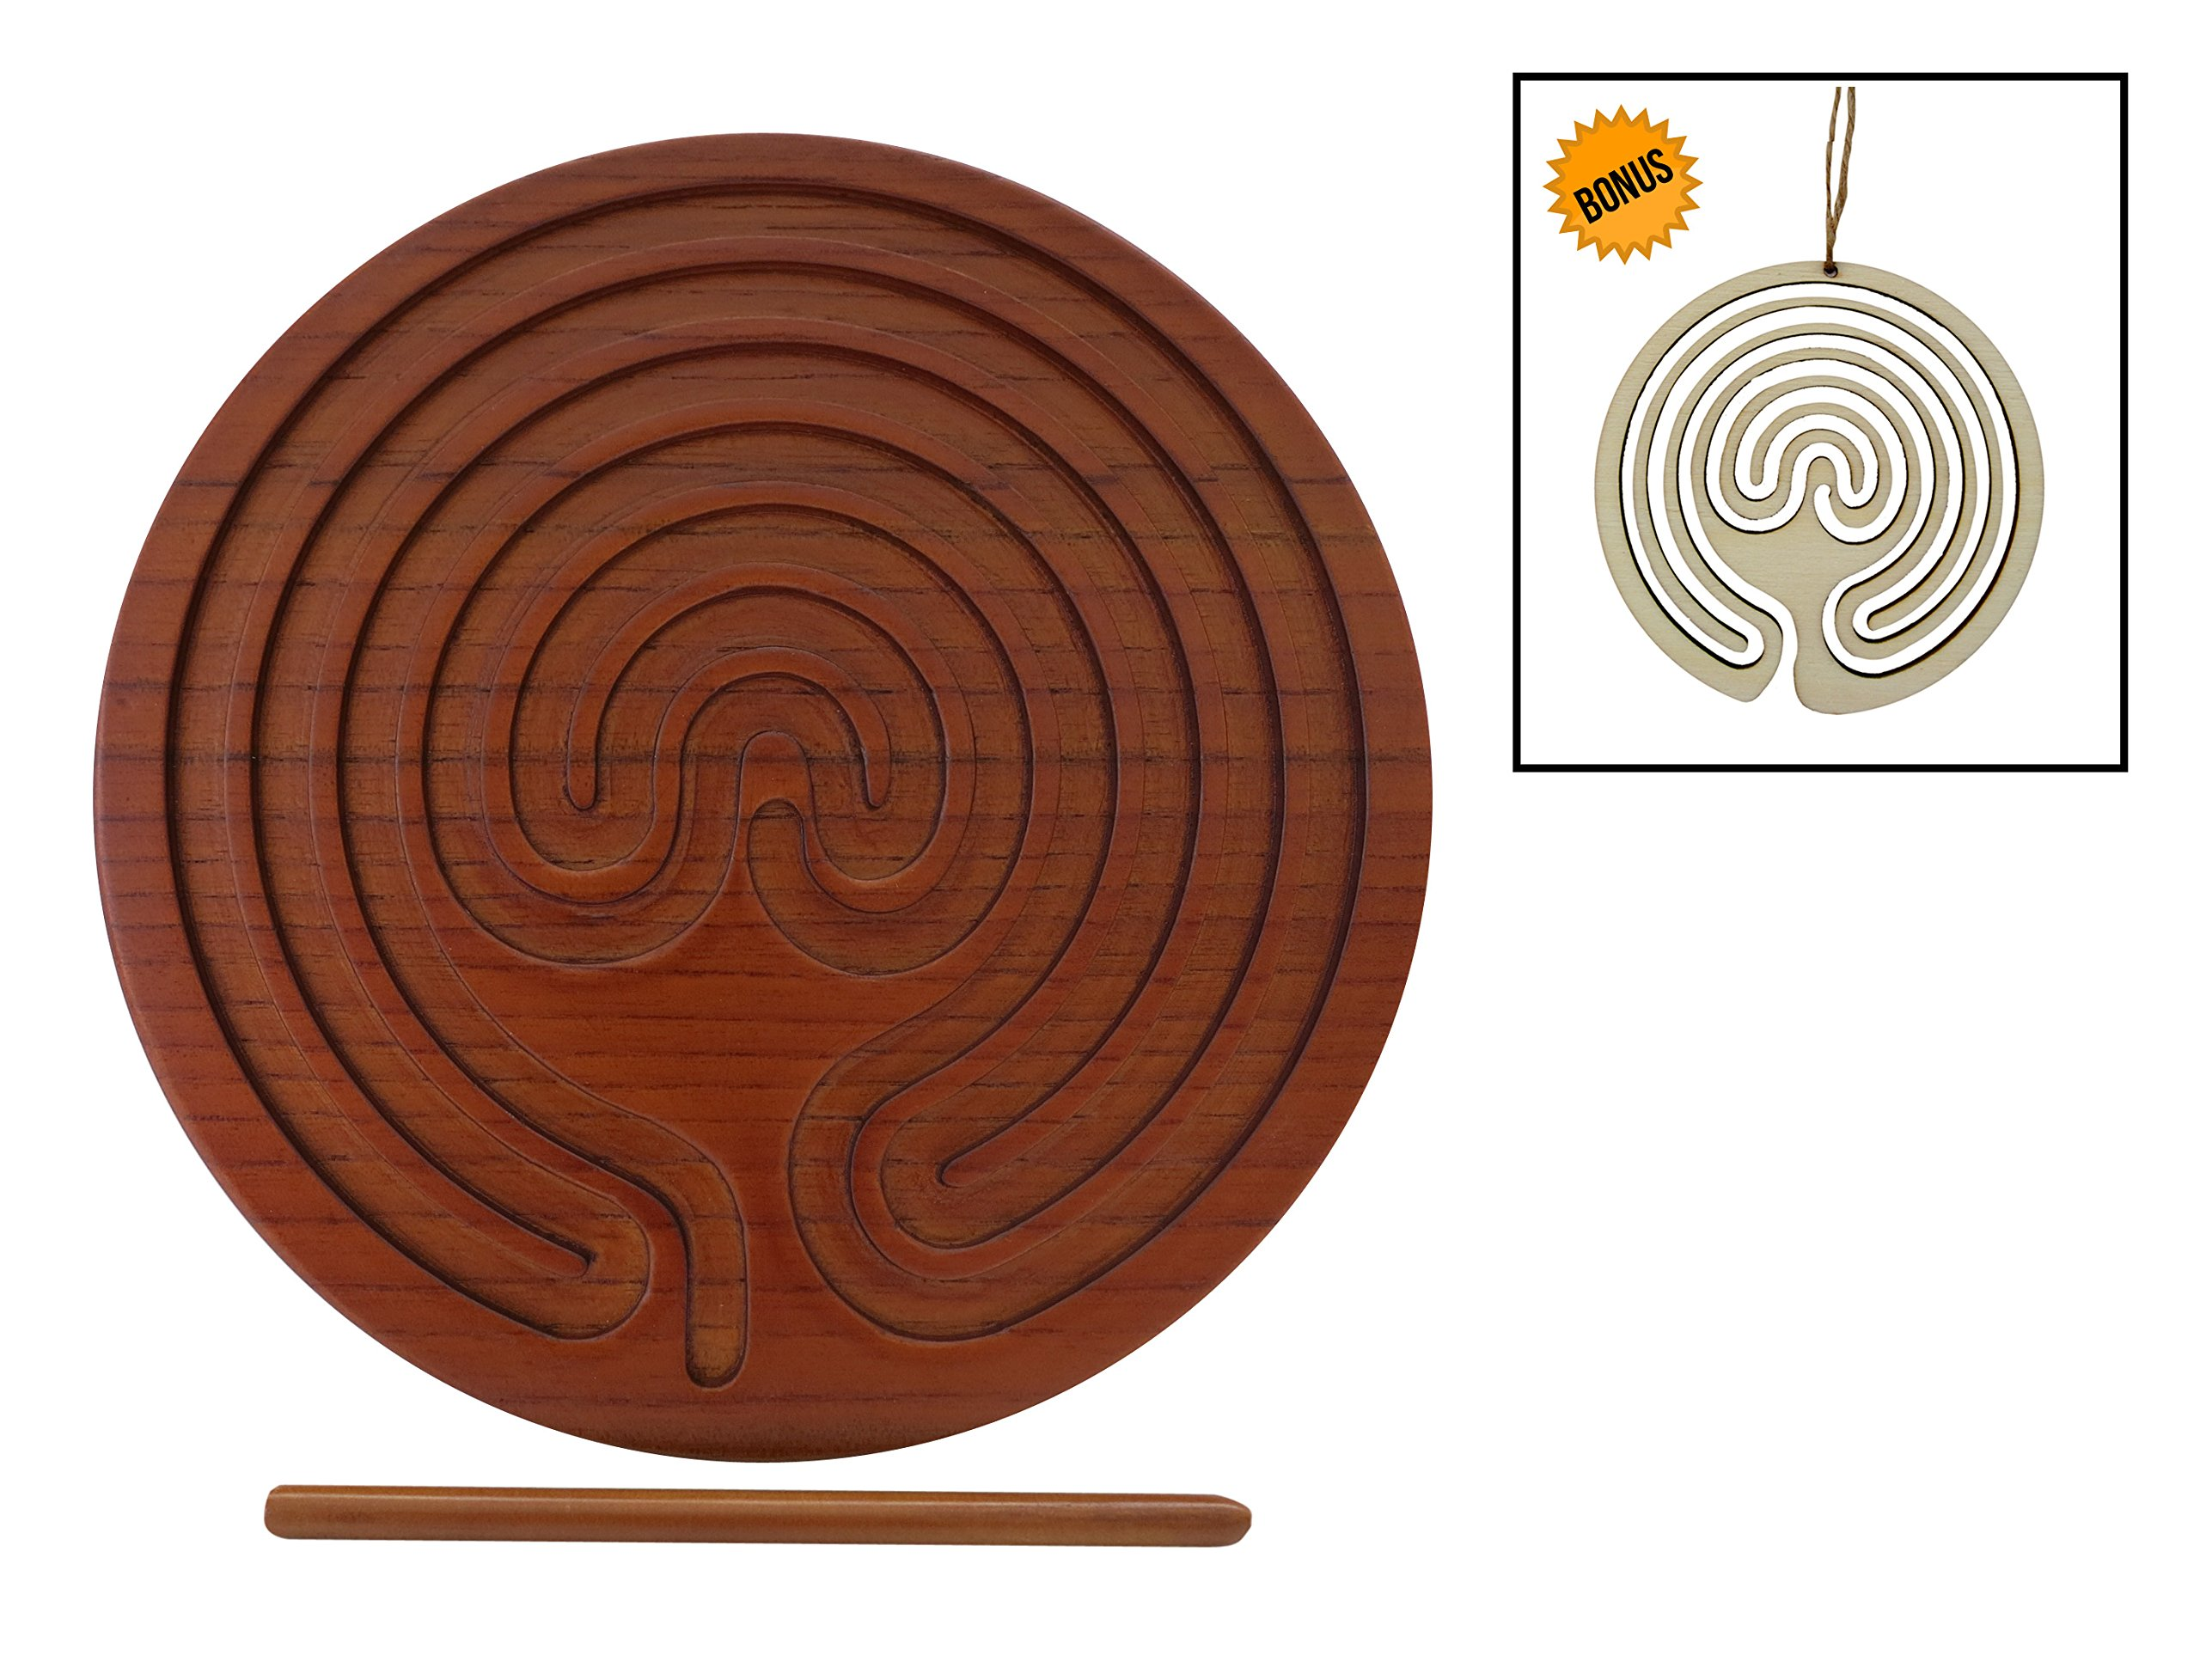 LabyrinthLady Finger Labyrinth for Meditation & Mindfulness, for Anxiety & Stress Relief,for Kids to Seniors to Find Calm, 8-1/2'' dia,Bamboo Wood,Eco-Friendly,Antimicrobial,Bonus Ornament